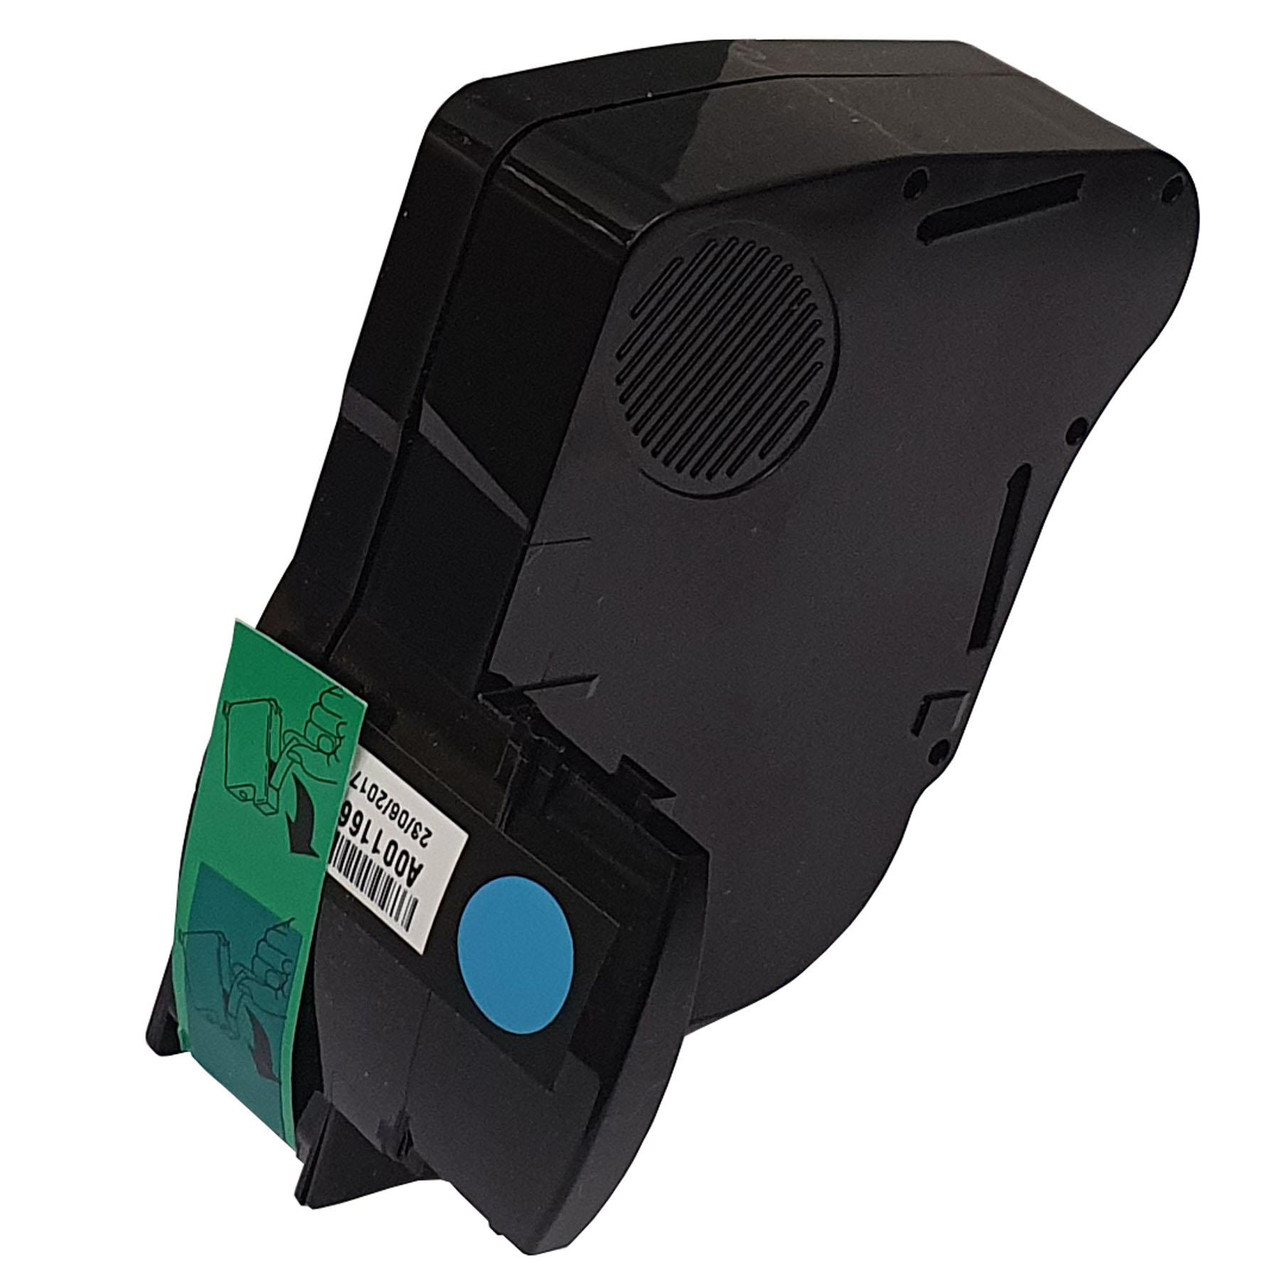 Compatible NEOPOST / QUADIENT IS240-280 Franking Ink Cartridge